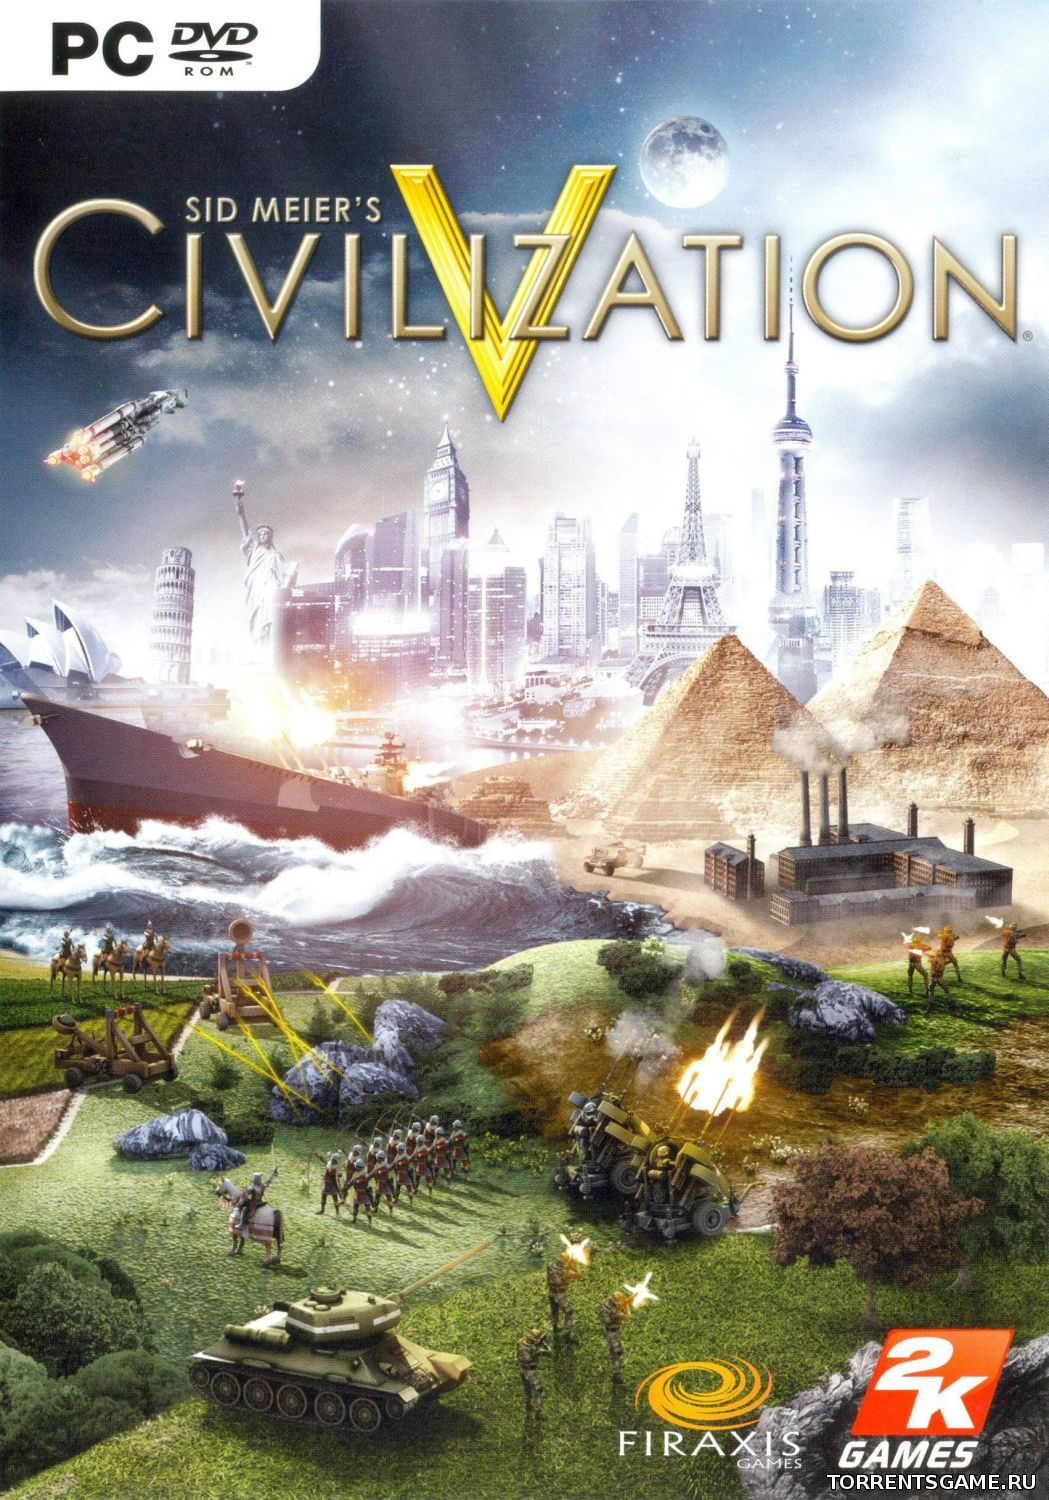 http://torrentsgame.ru/load/games/strategy/sid_meiers_civilization_5/4-1-0-55